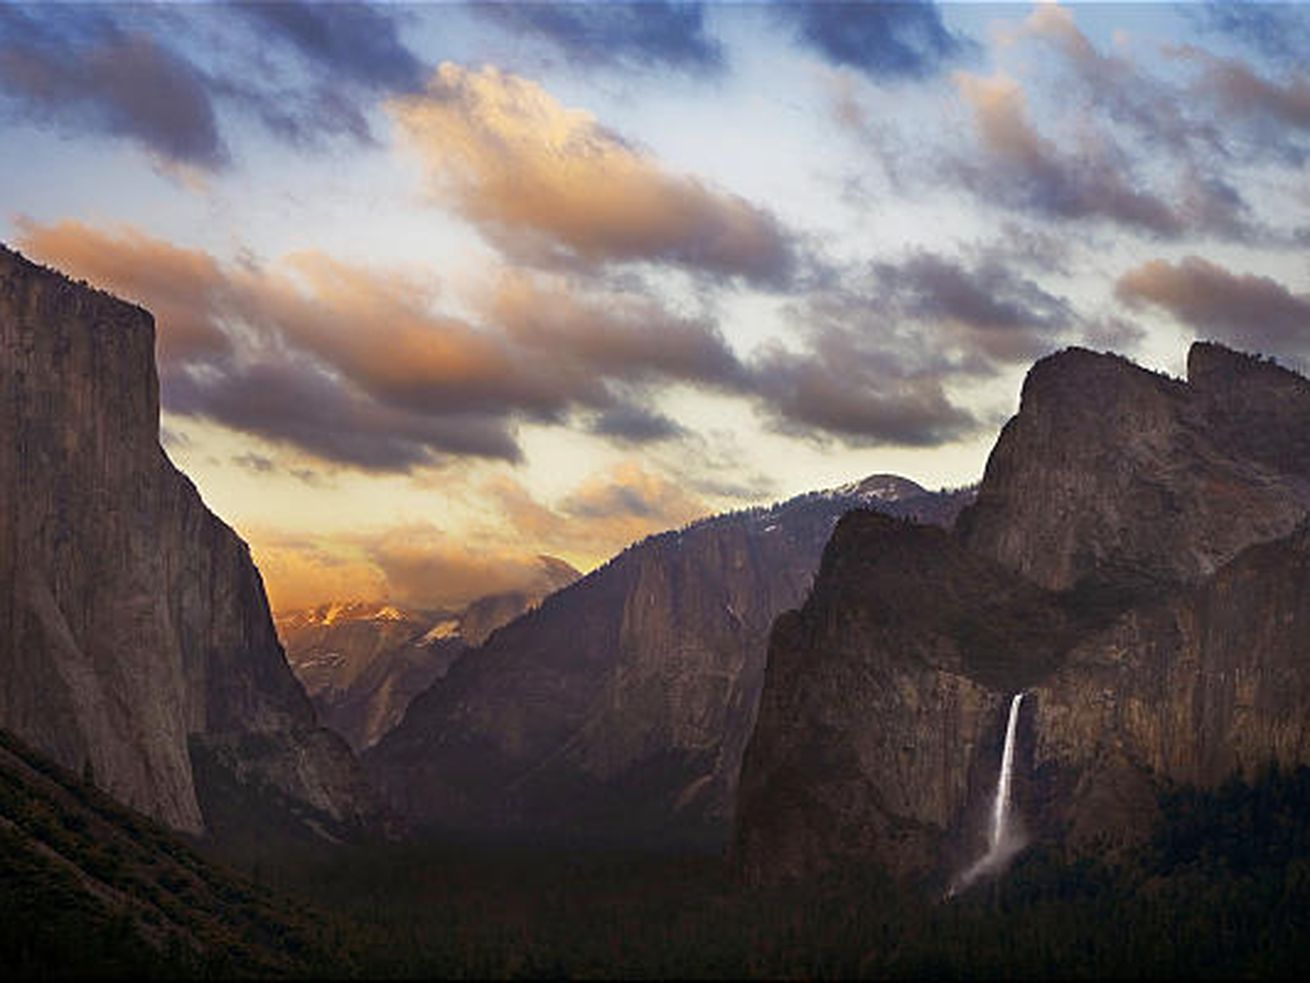 There's a norovirus hitting Yosemite Park right now. Here's what you need to know